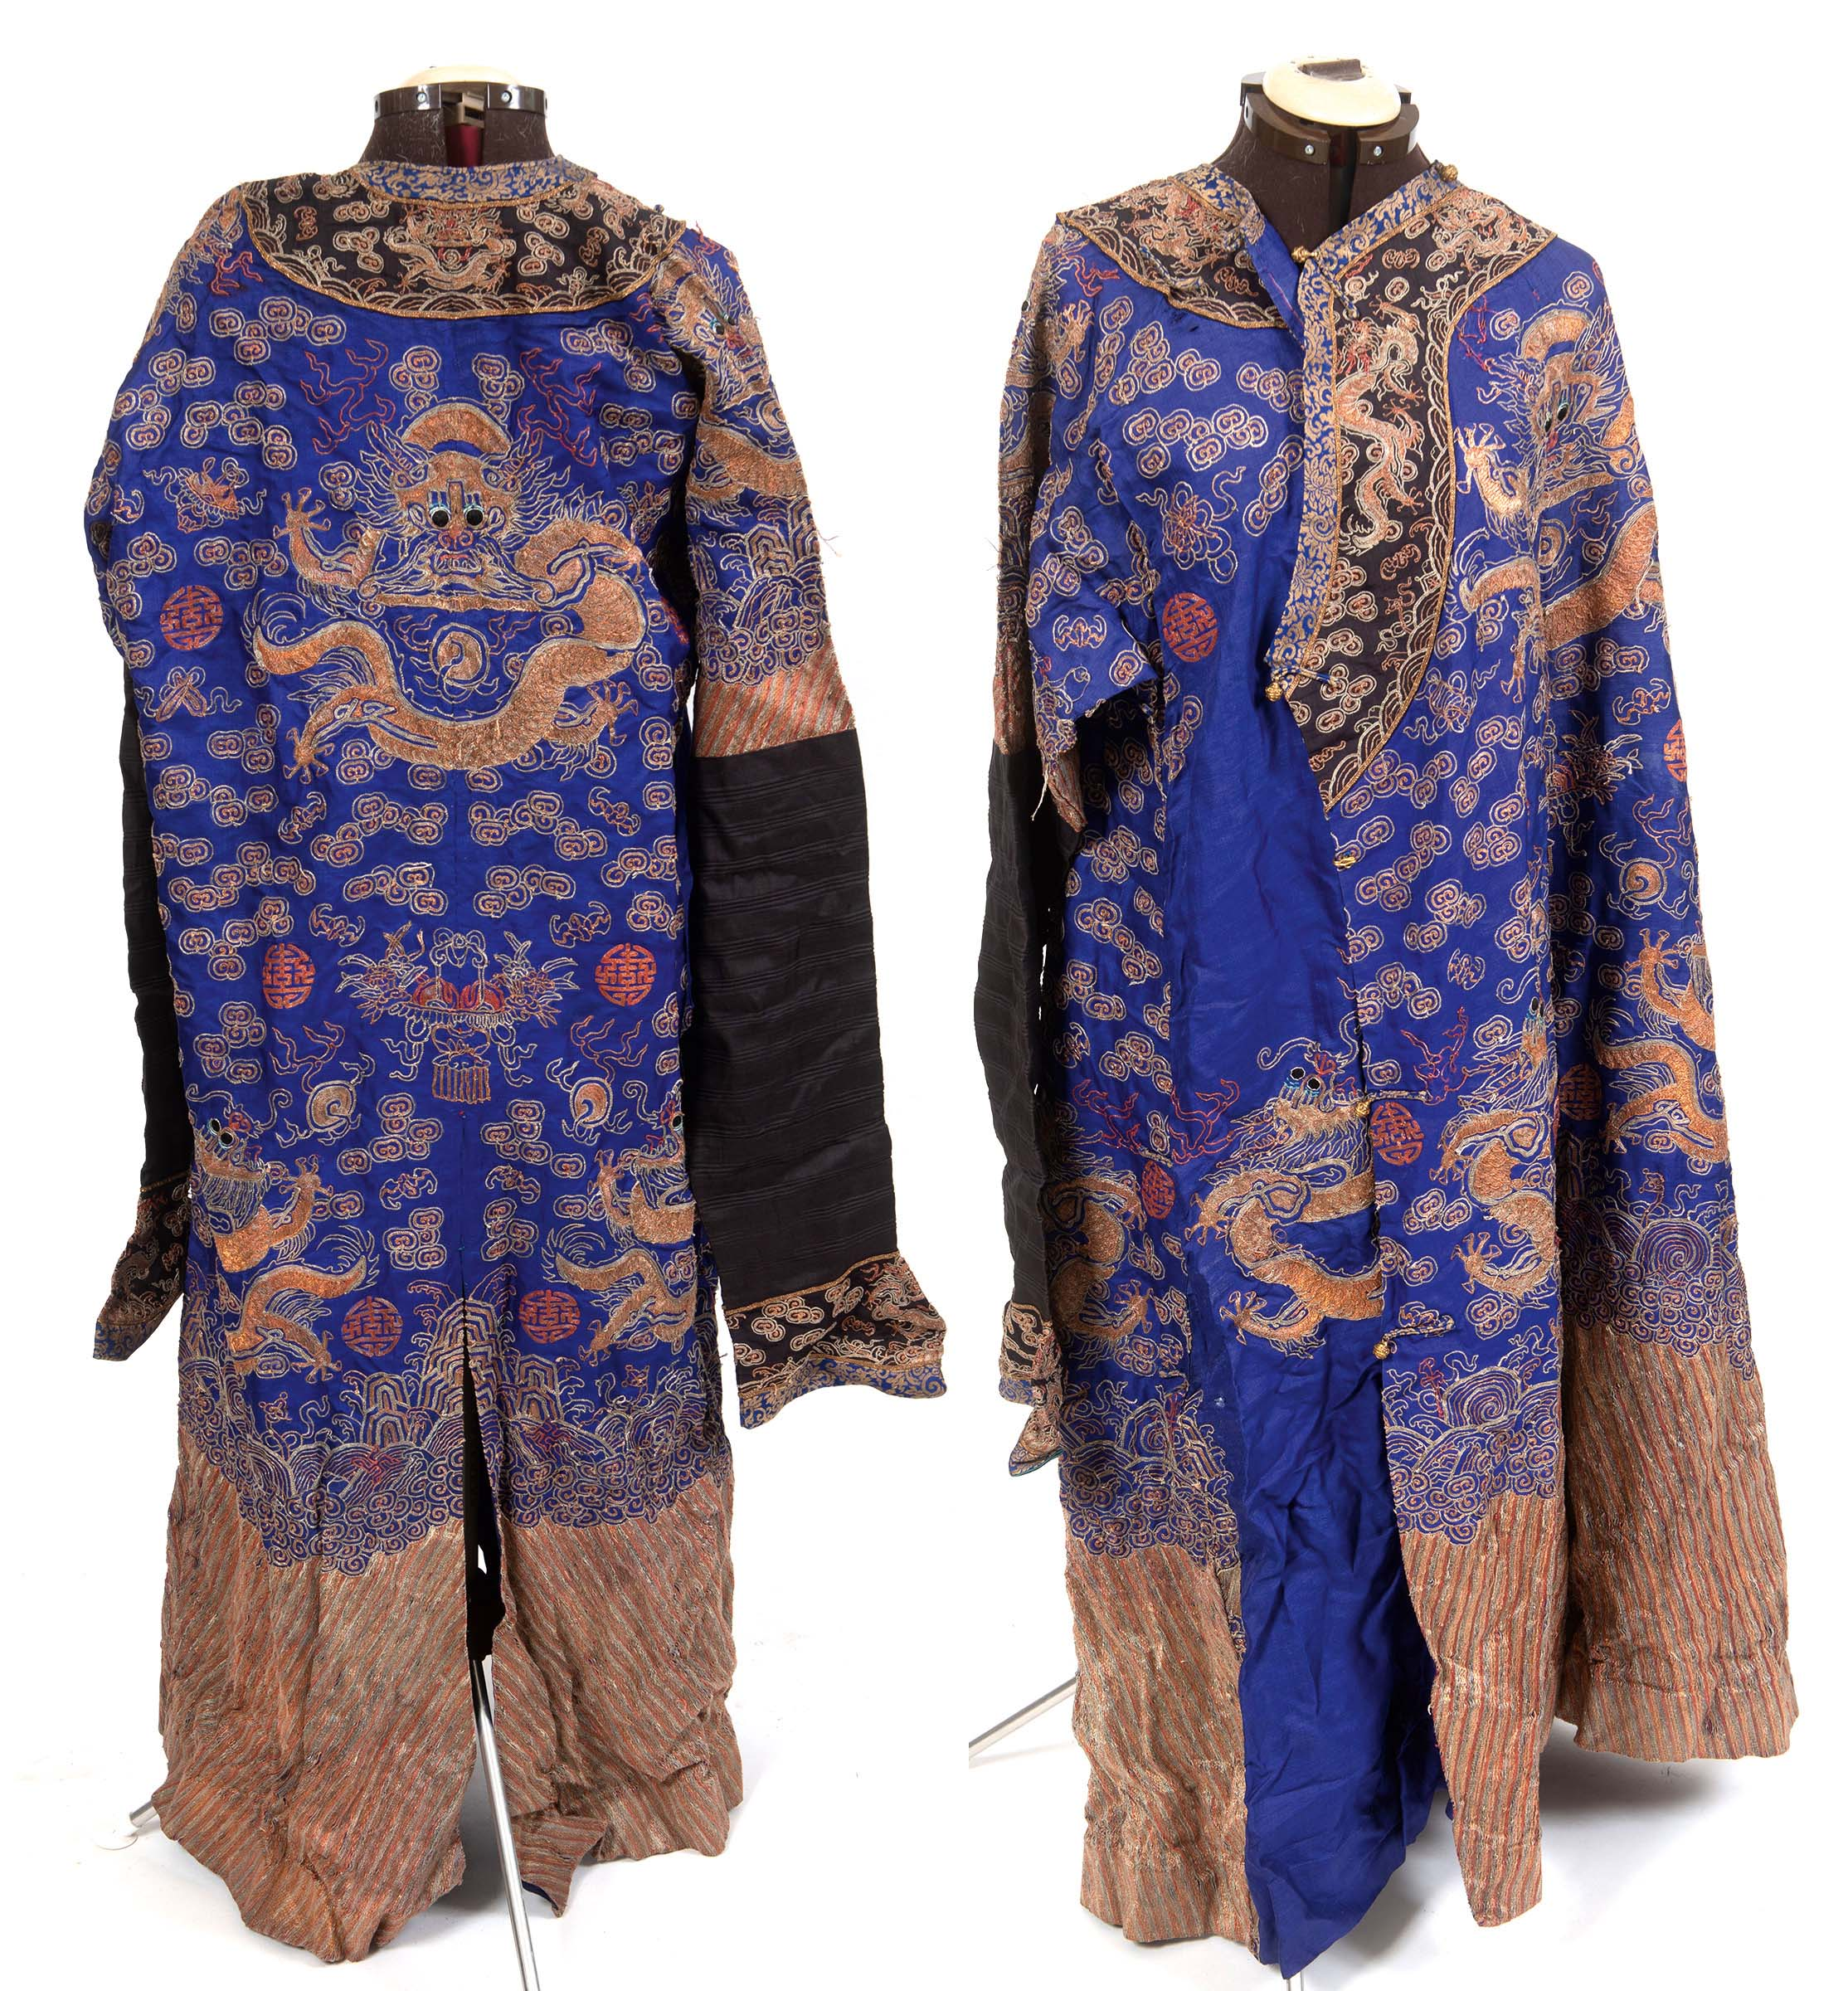 Lot 1889 - 19THC CHINESE DRAGON ROBE a late 19thc unlined blue silk Chinese Dragon robe, worked with couched